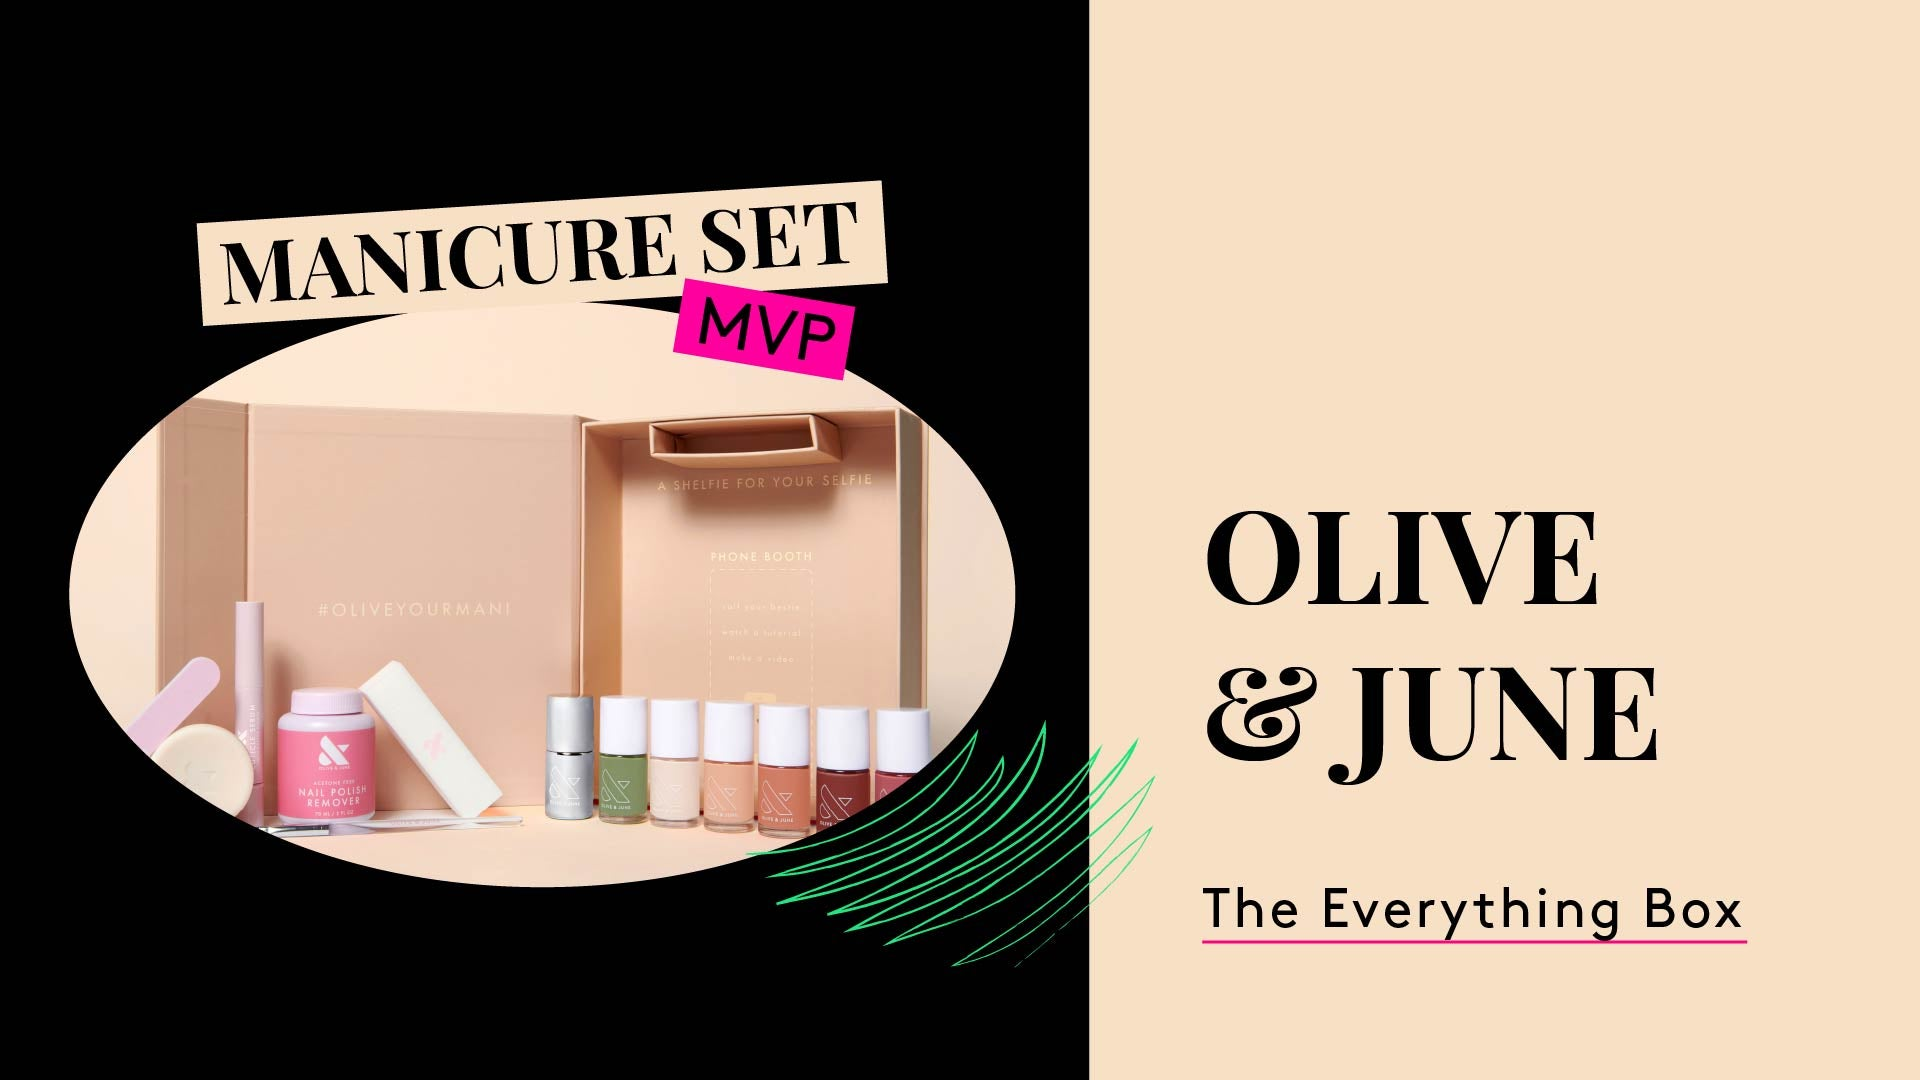 Manicure Set MVP. This is a photo of Olive and June The Everything Box.